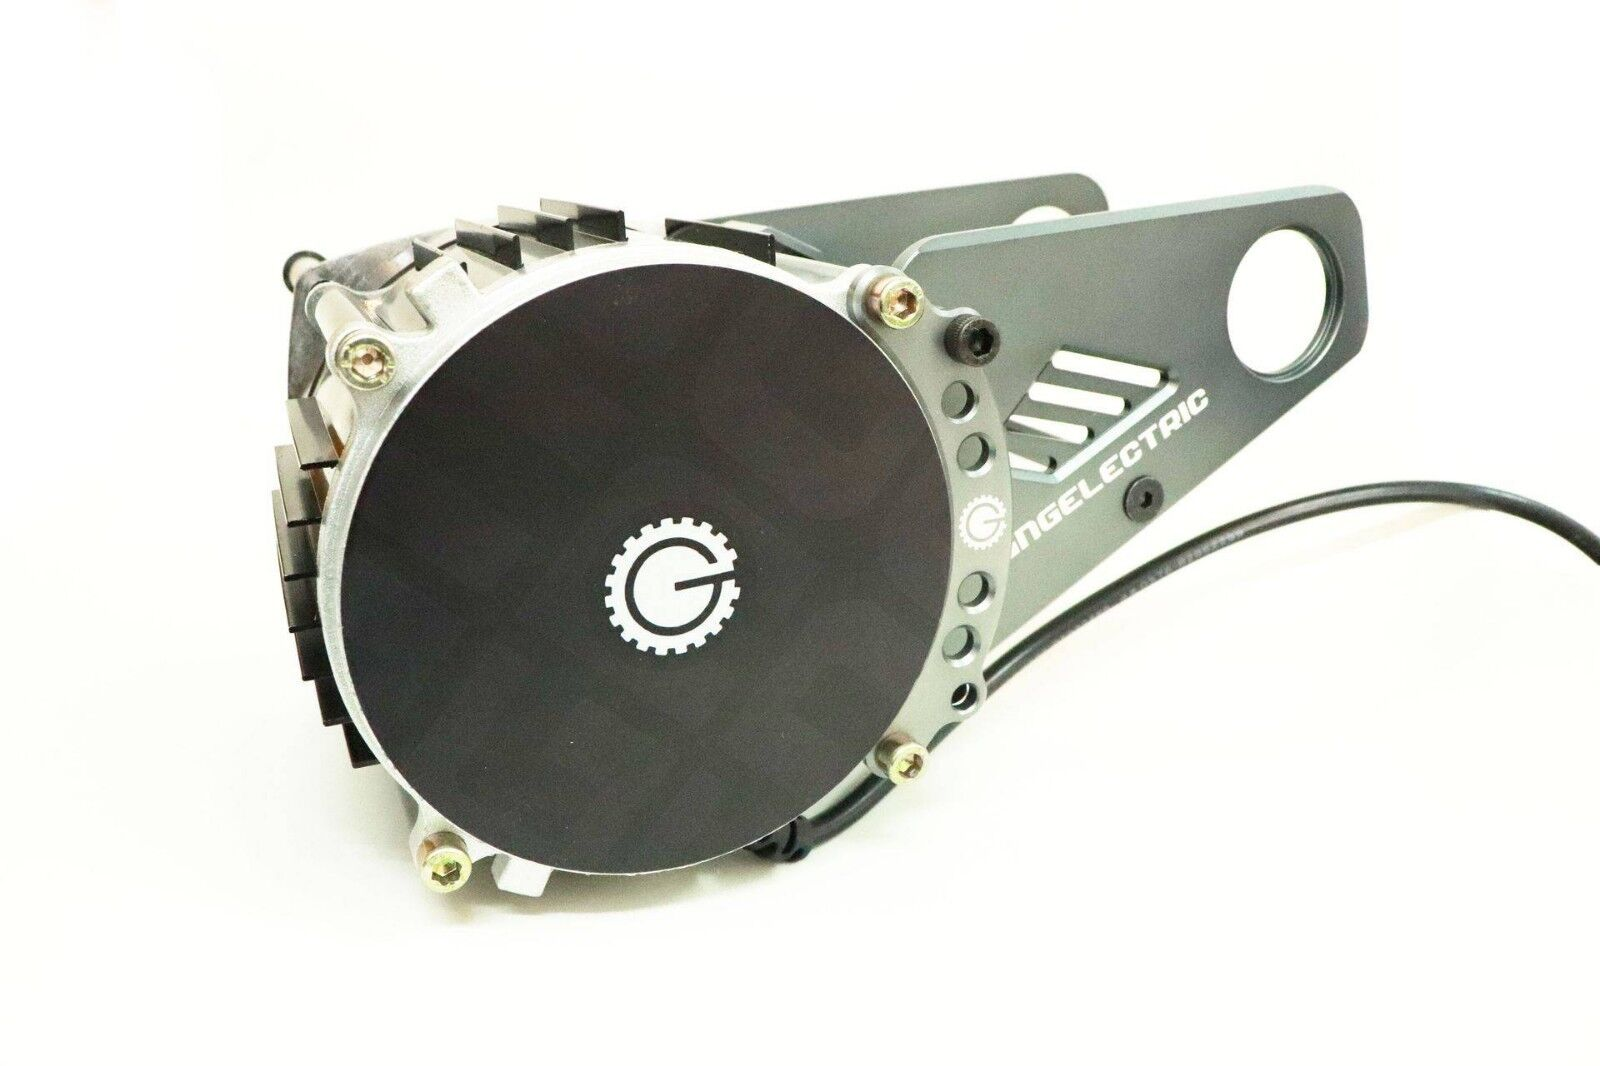 GNG NEW  3000W PLANETARY MID DRIVE EBIKE KIT   FOR 120mm BB(without controller)  best service